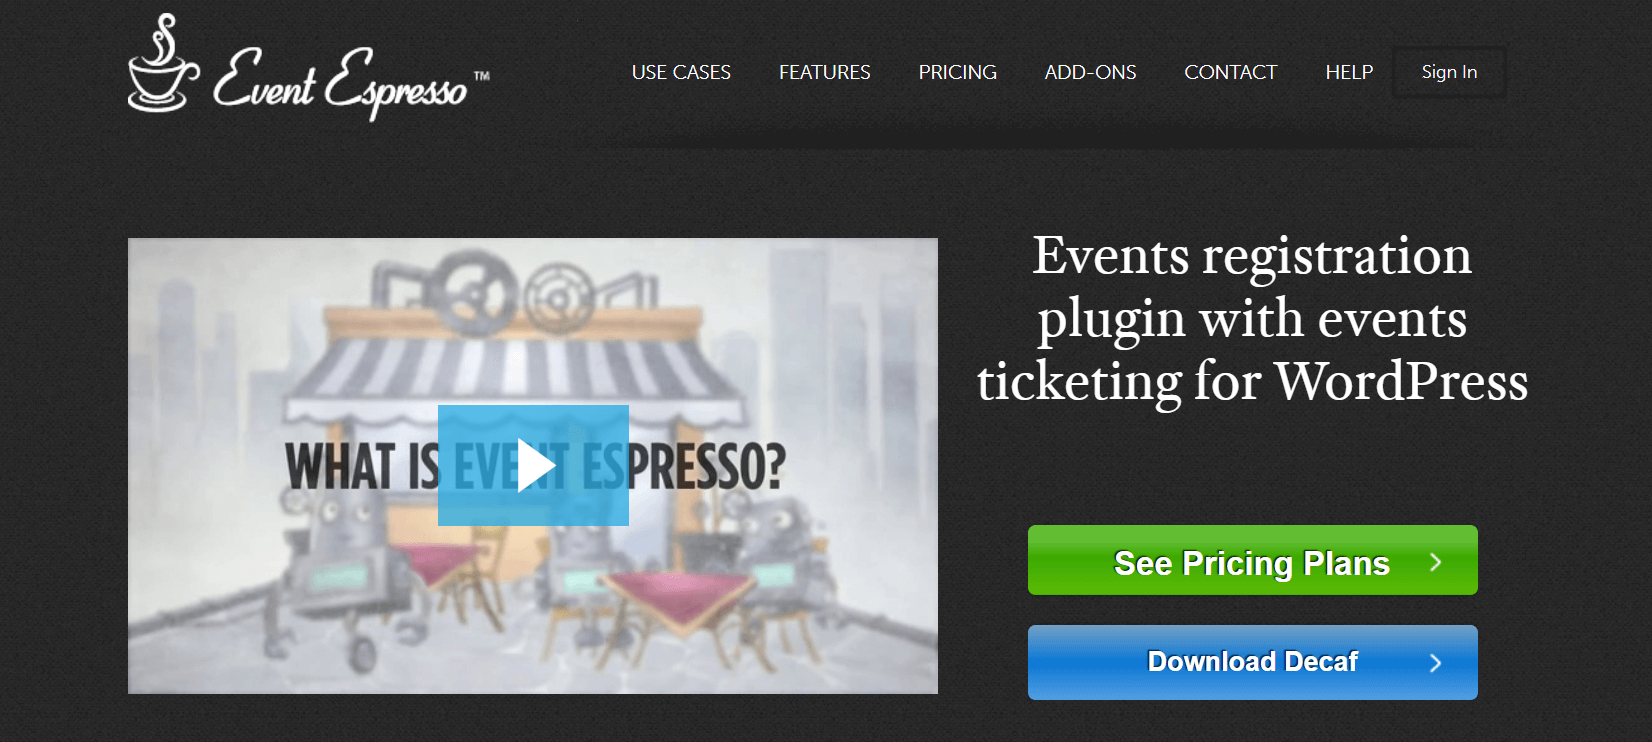 The Event Espresso website.